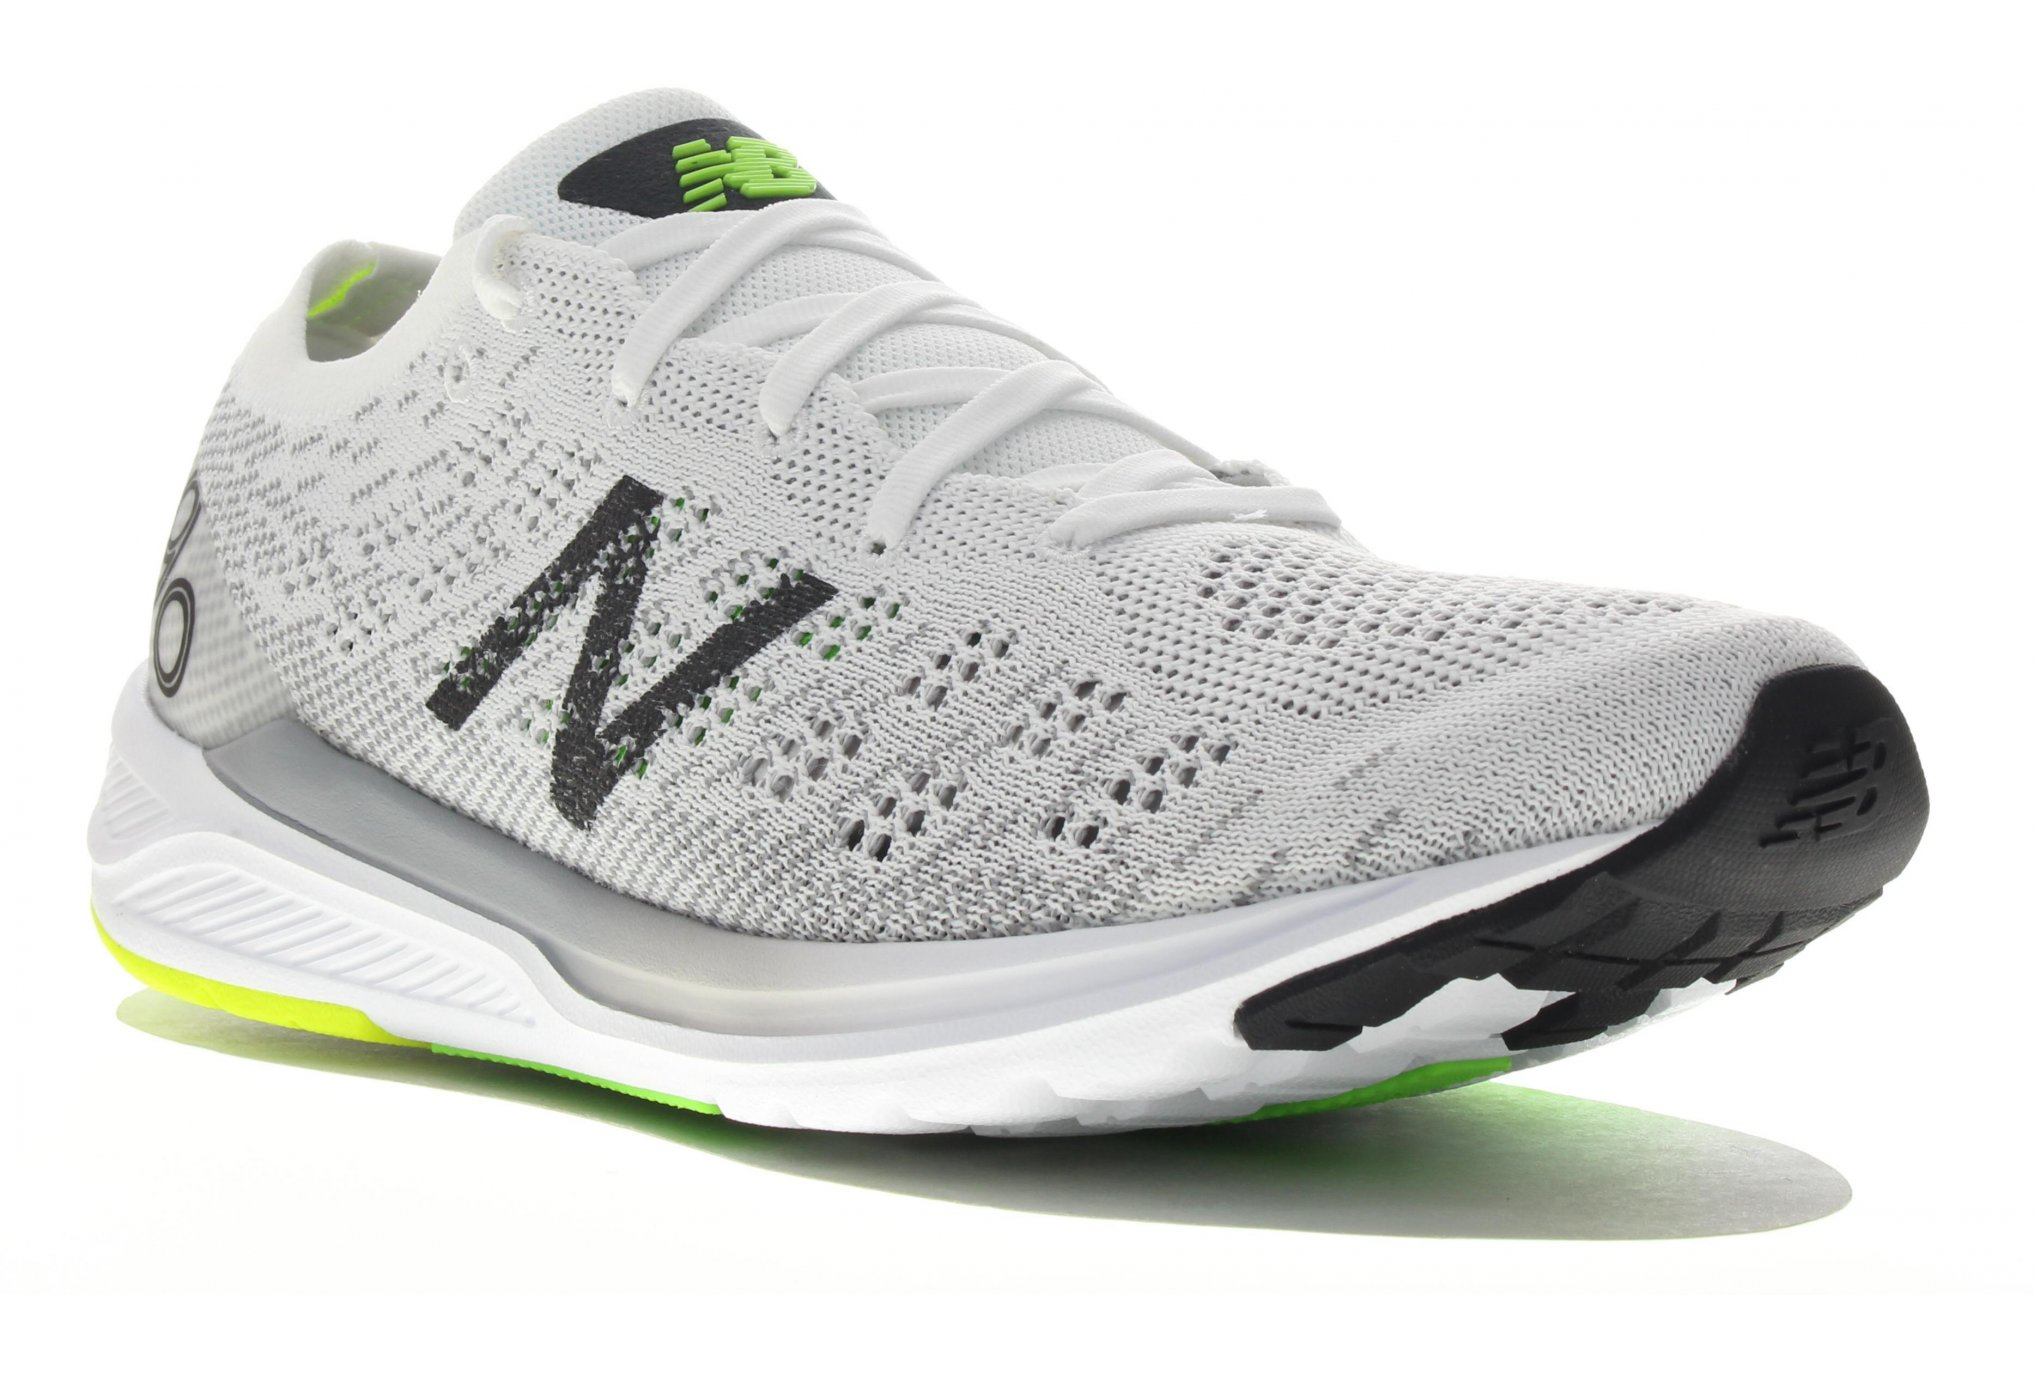 New Balance 890 V7 Chaussures homme